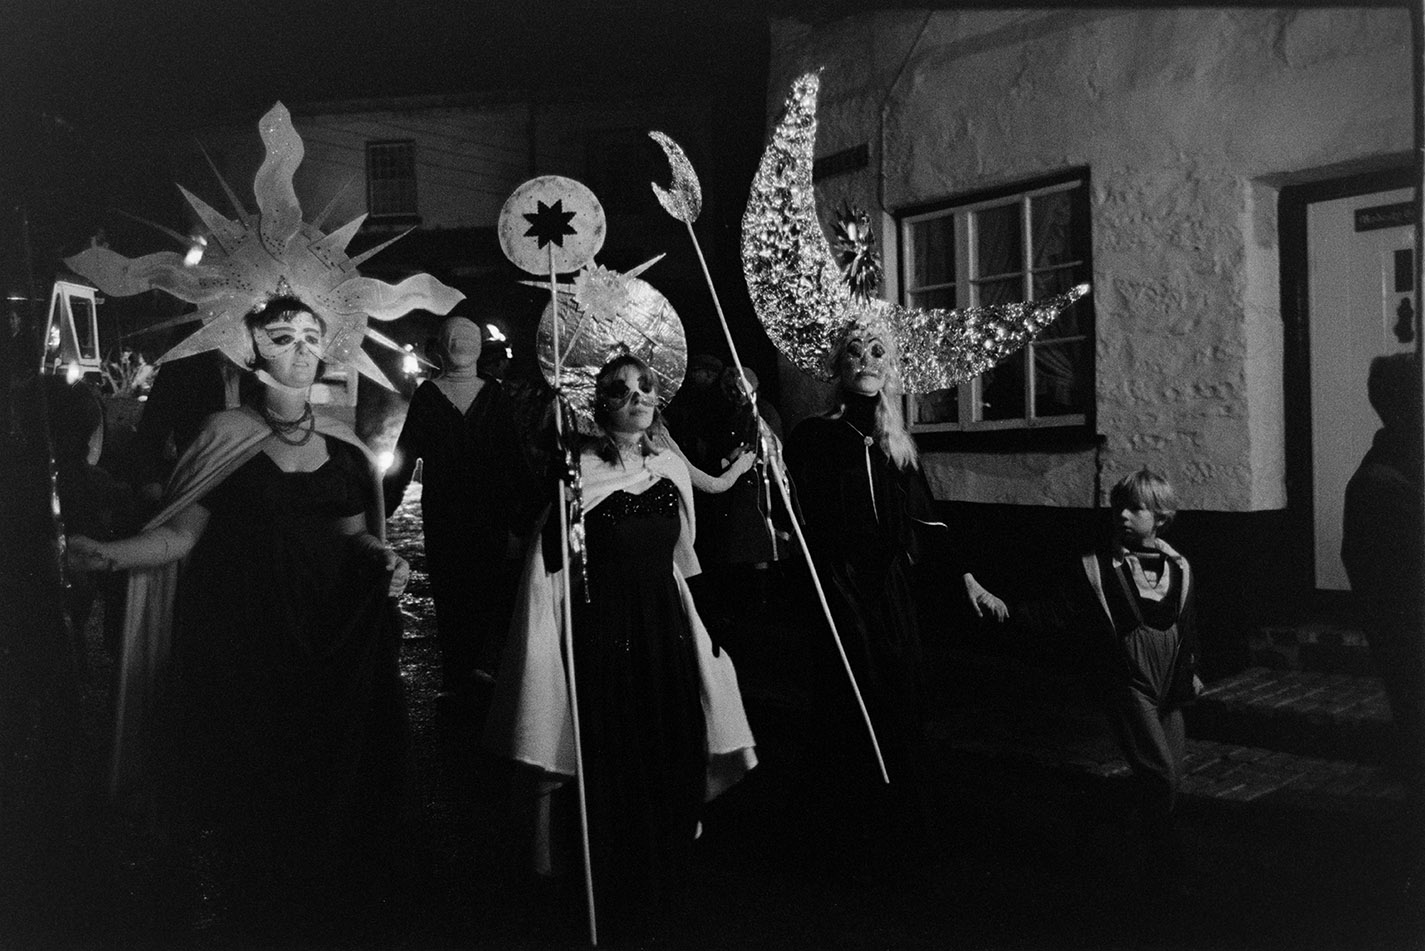 Carnival parade, women dressed as constellations, Hatherleigh, 6 November 1974